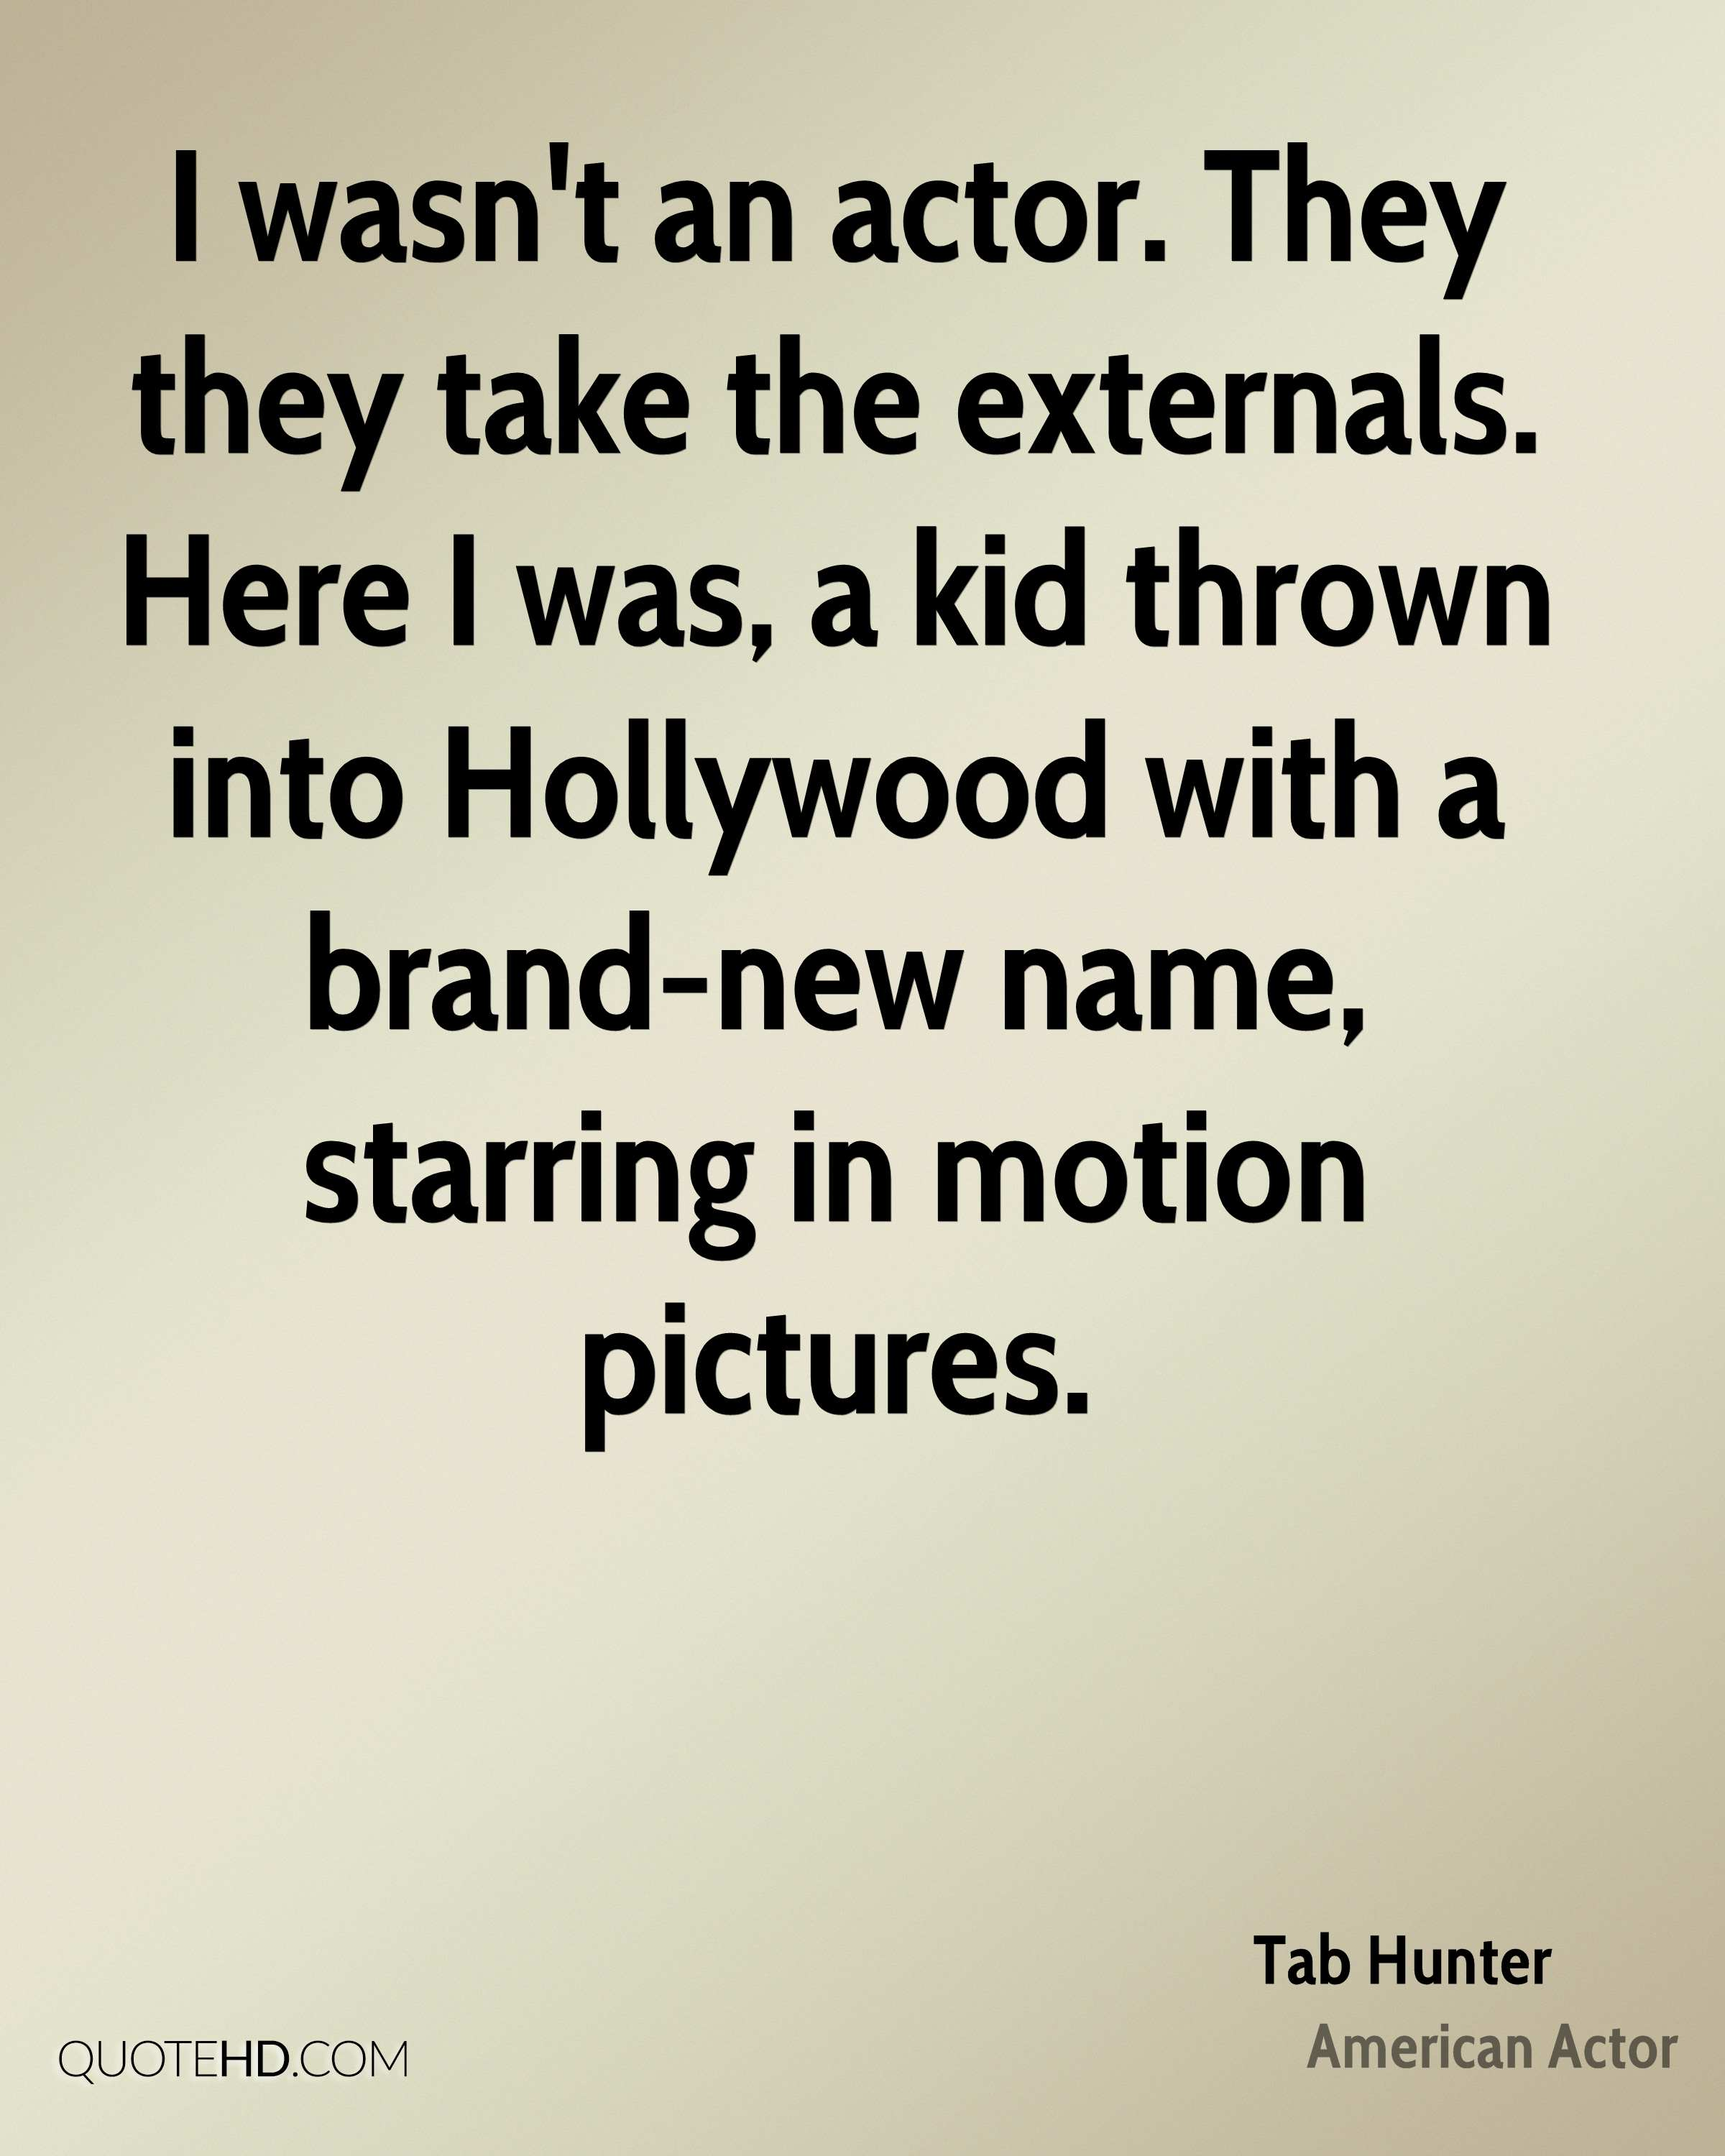 I wasn't an actor. They they take the externals. Here I was, a kid thrown into Hollywood with a brand-new name, starring in motion pictures.